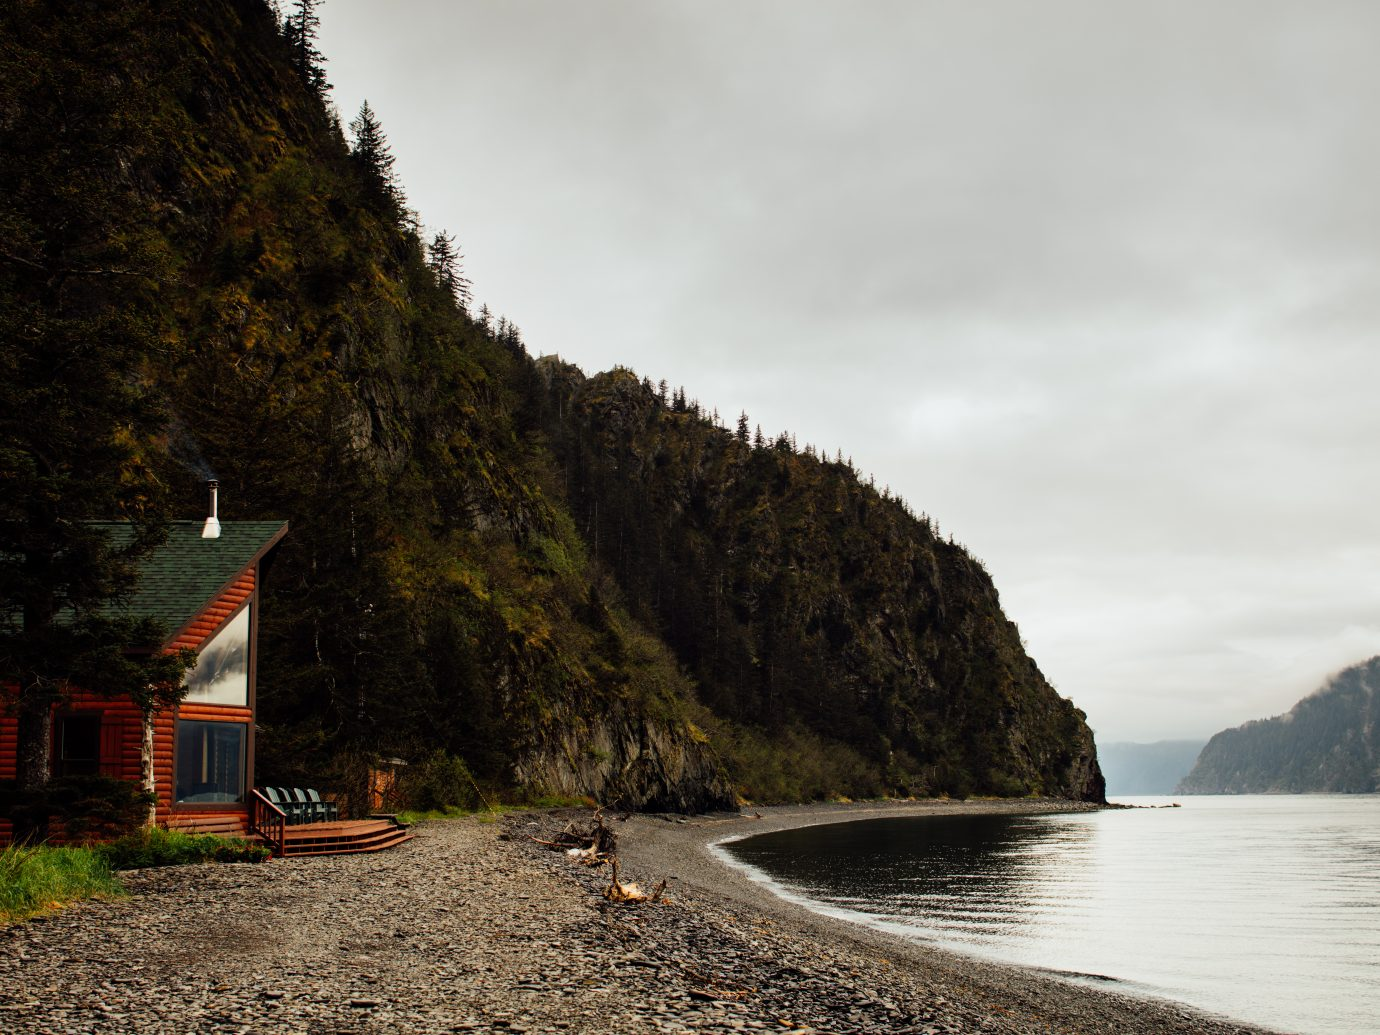 Lake view at Kenai Fjords Wilderness Lodge, Alaska